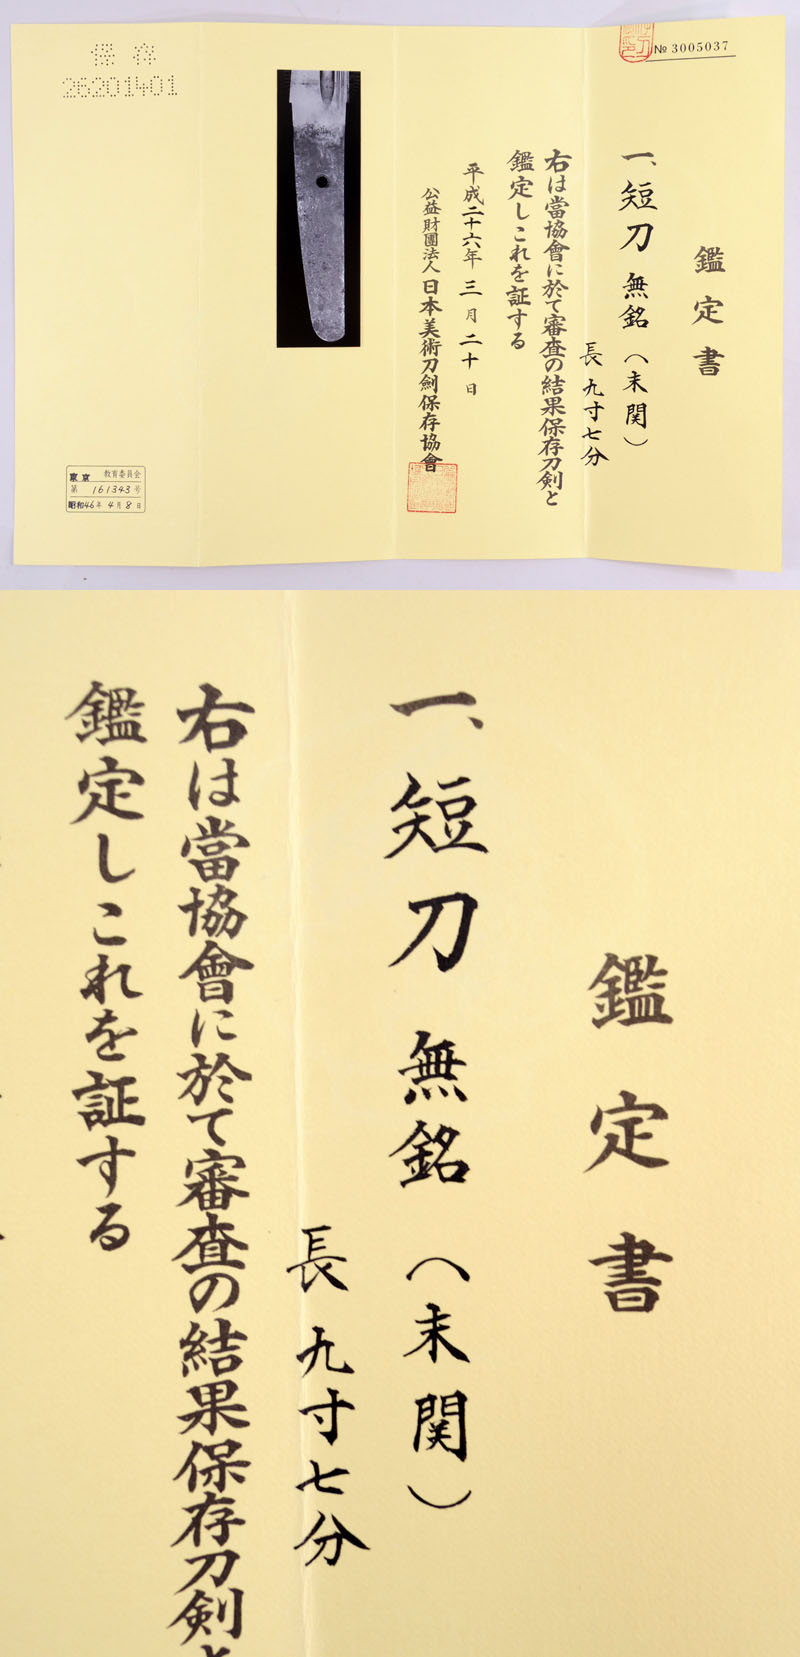 無銘(末関) Picture of Certificate